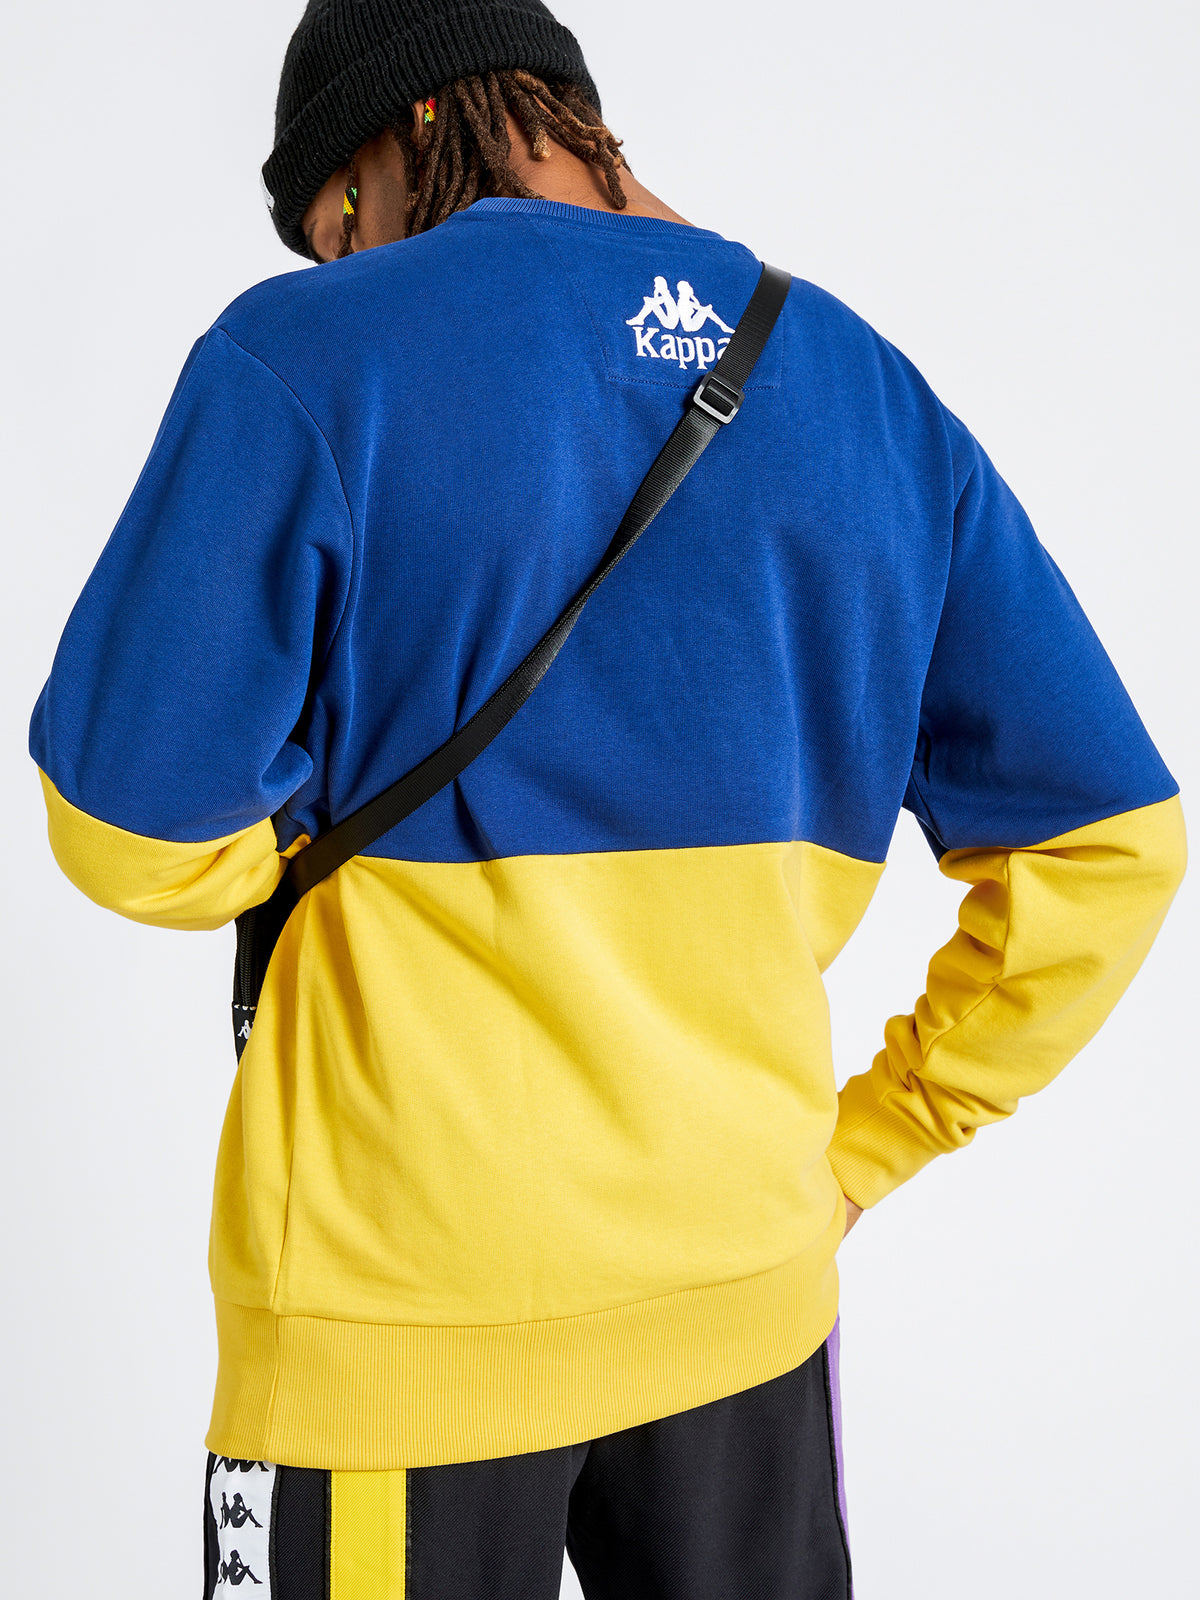 Authentic Clinic Jumper in Blue & Yellow